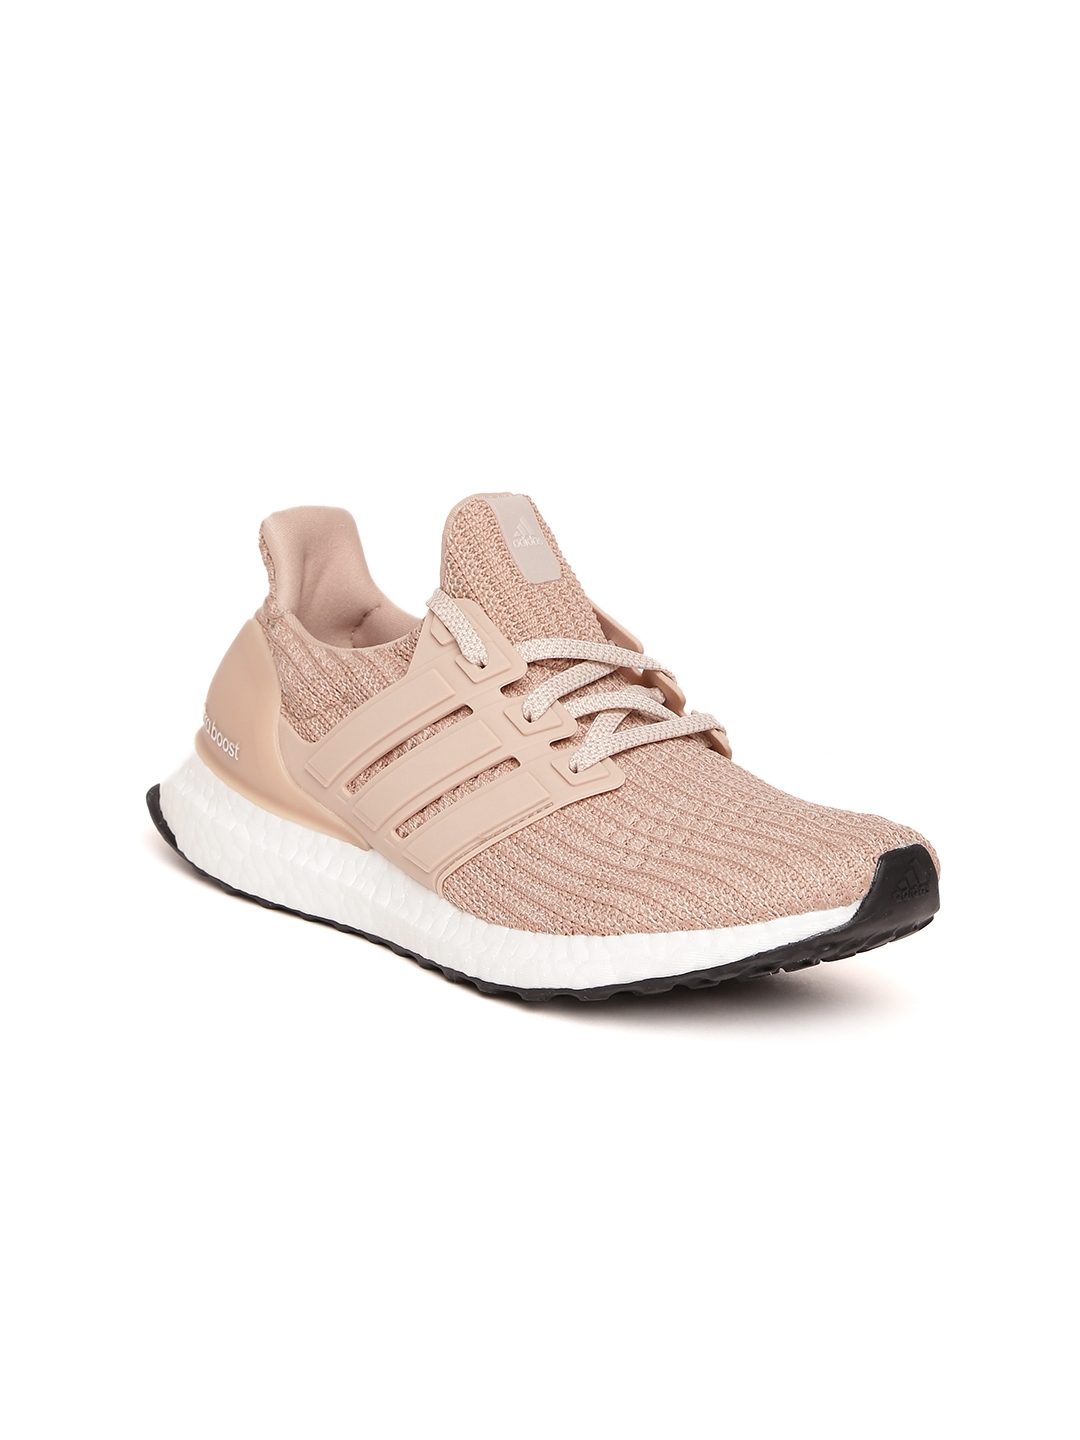 buy popular f9a7c 5bc06 ADIDAS Women Peach-Coloured Ultraboost Patterned Running Shoes